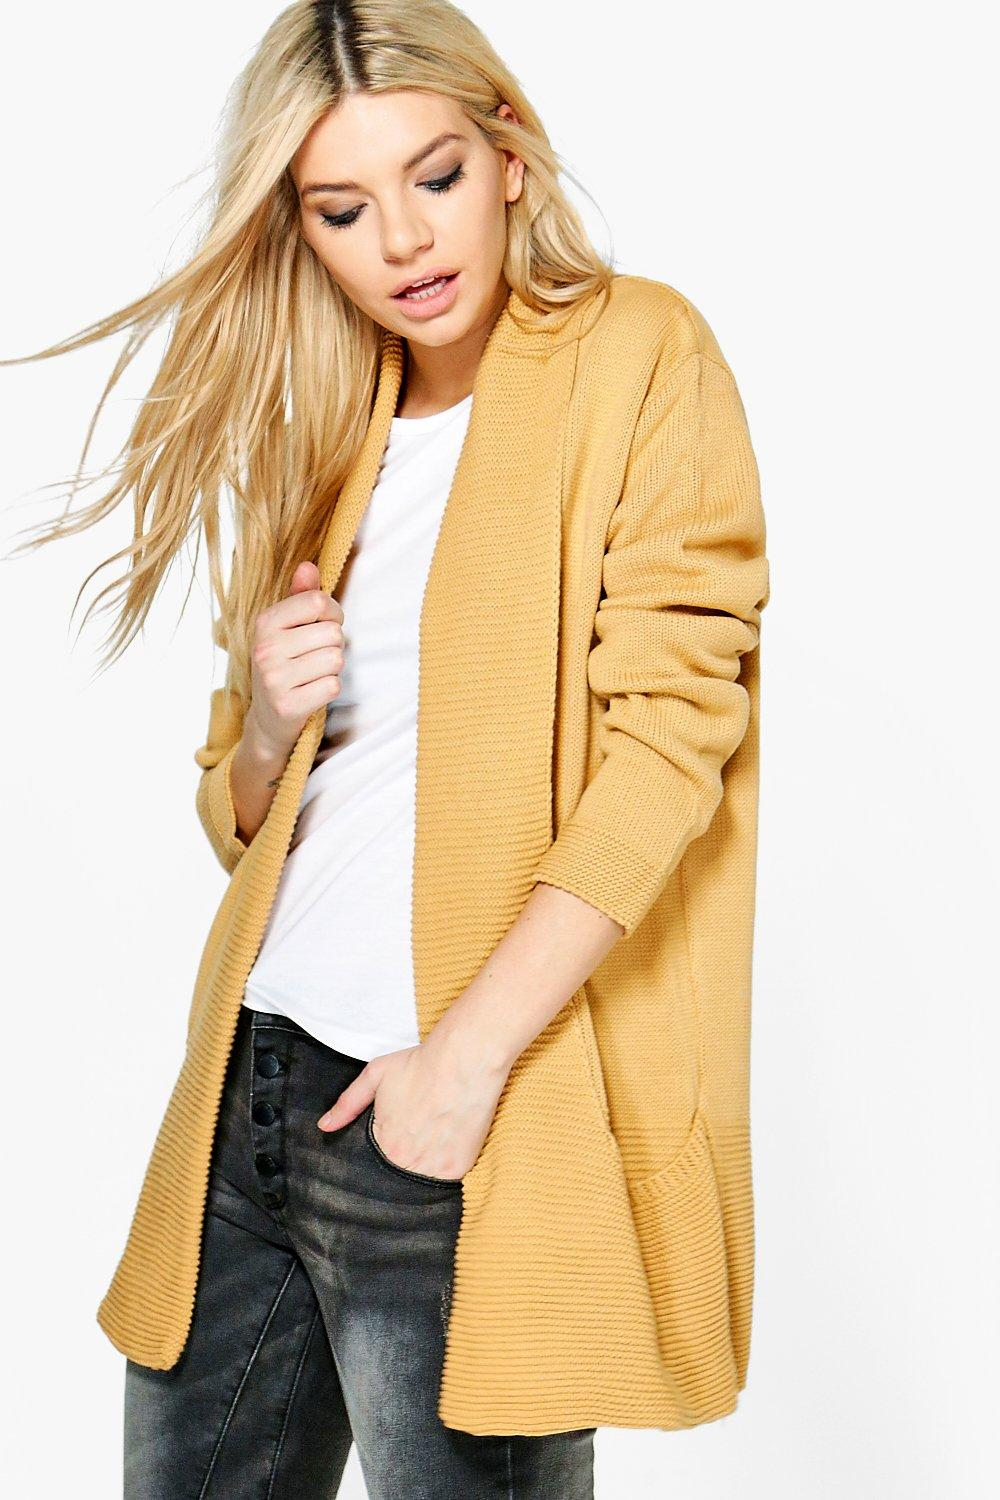 Boohoo Womens Brooke Soft Knit Edge to Edge Cardigan in Camel size S/M eBay